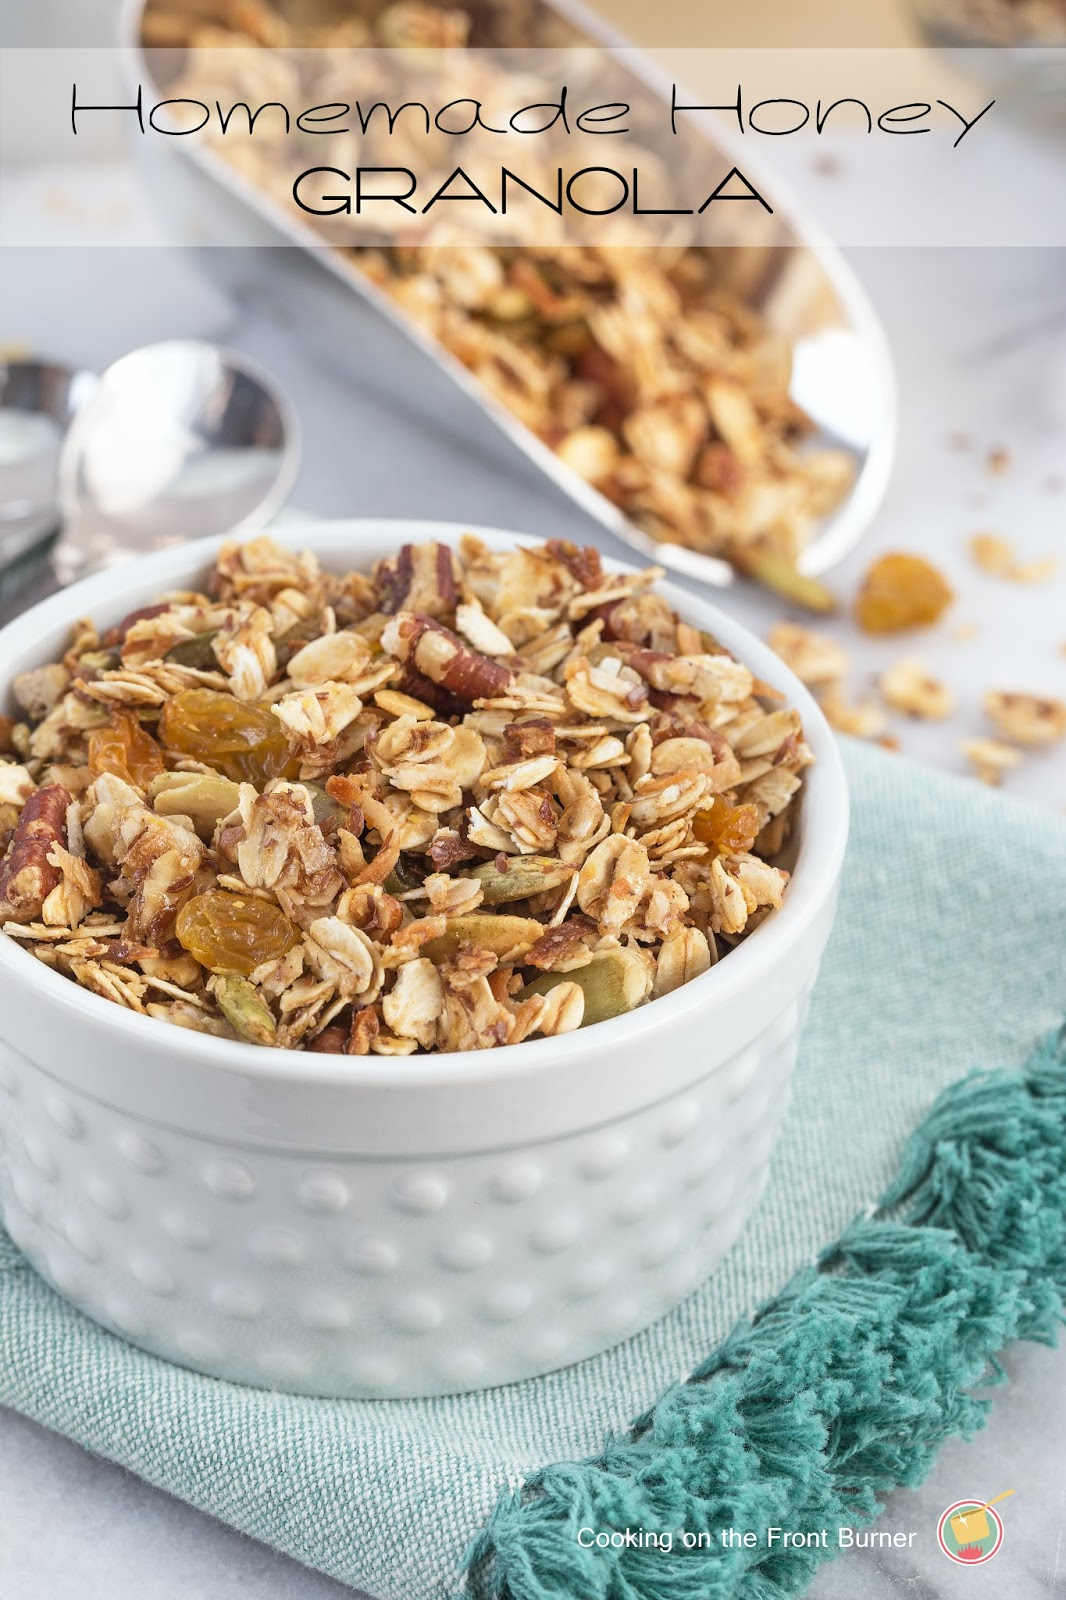 Homemade honey granola cooking on the front burner ccuart Choice Image